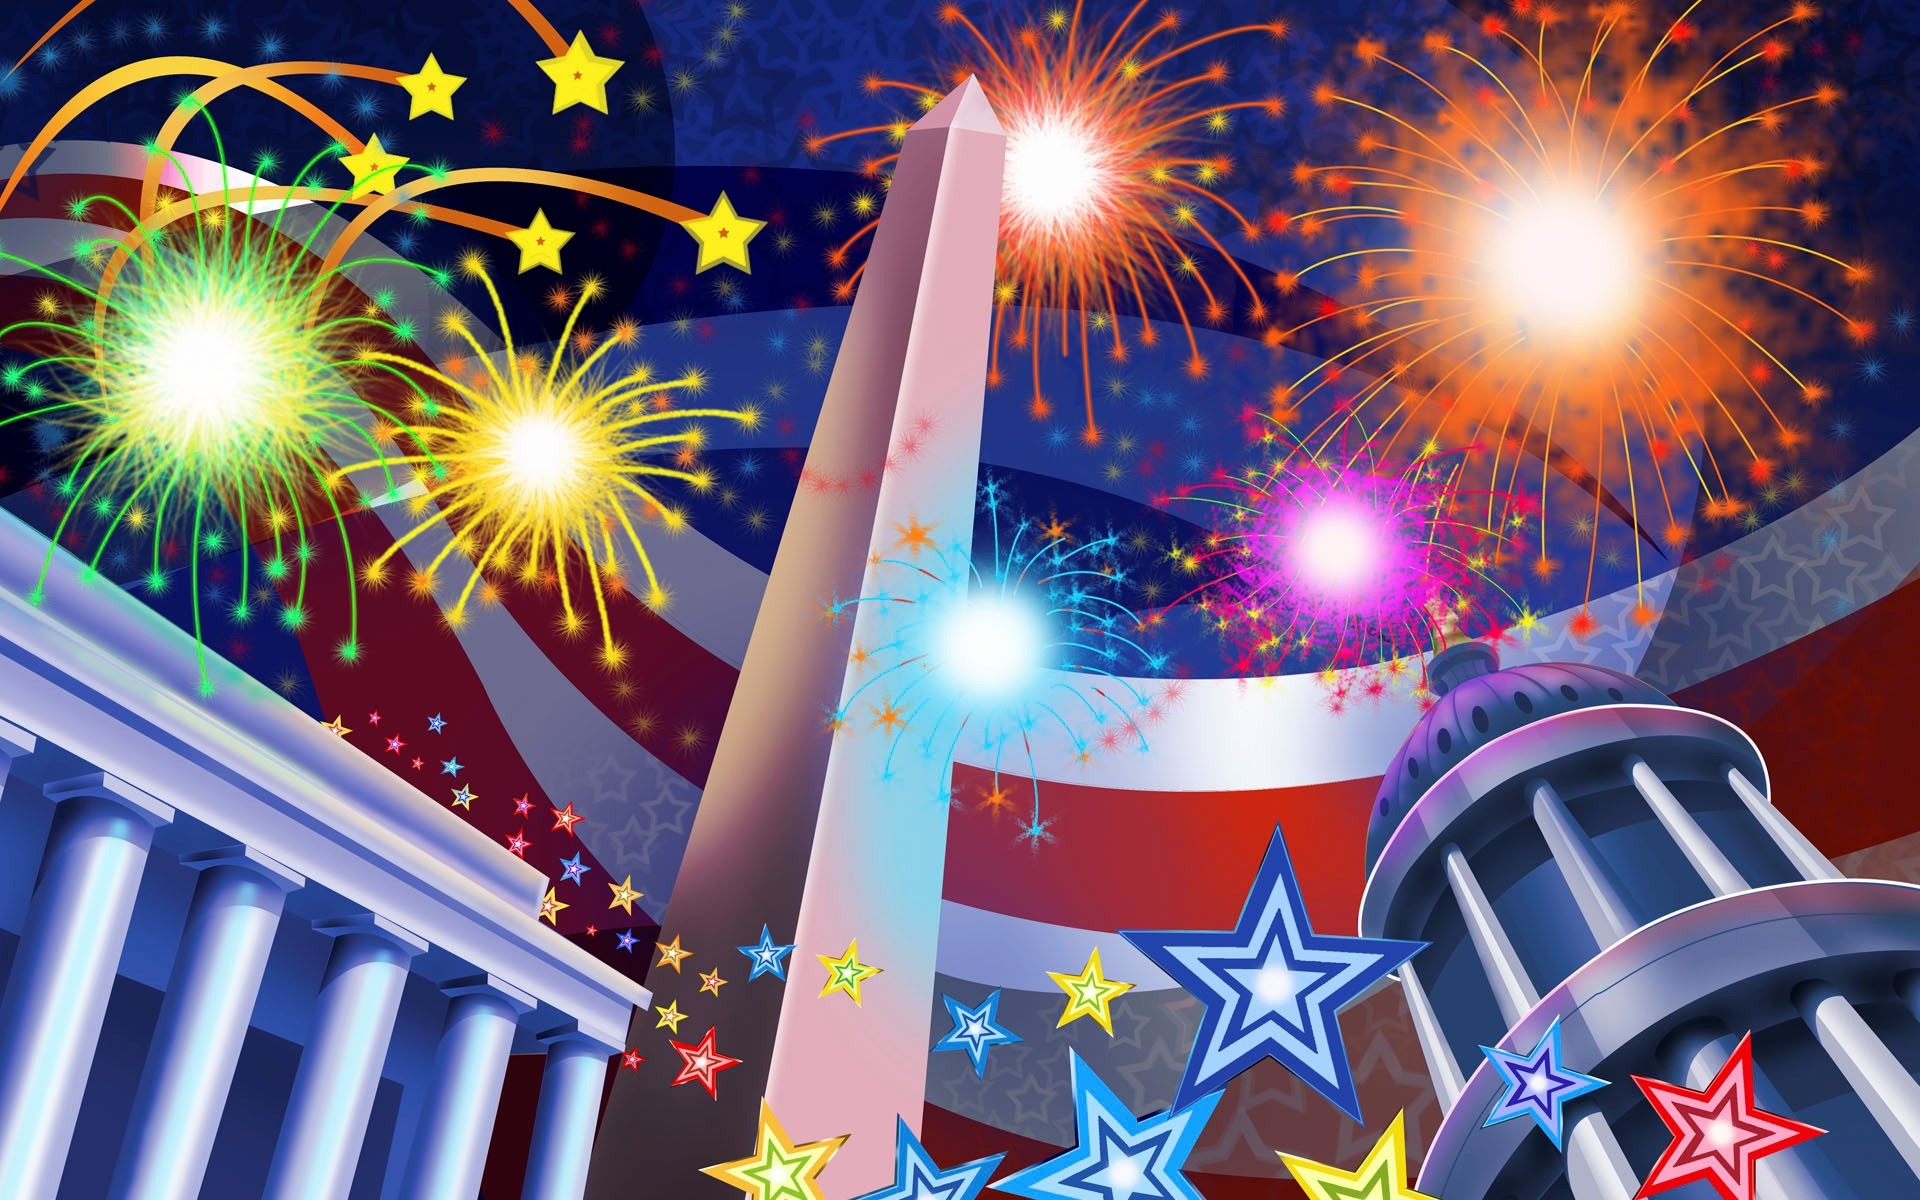 HD Widescreen Wallpapers – 4th of july image – 4th of july category